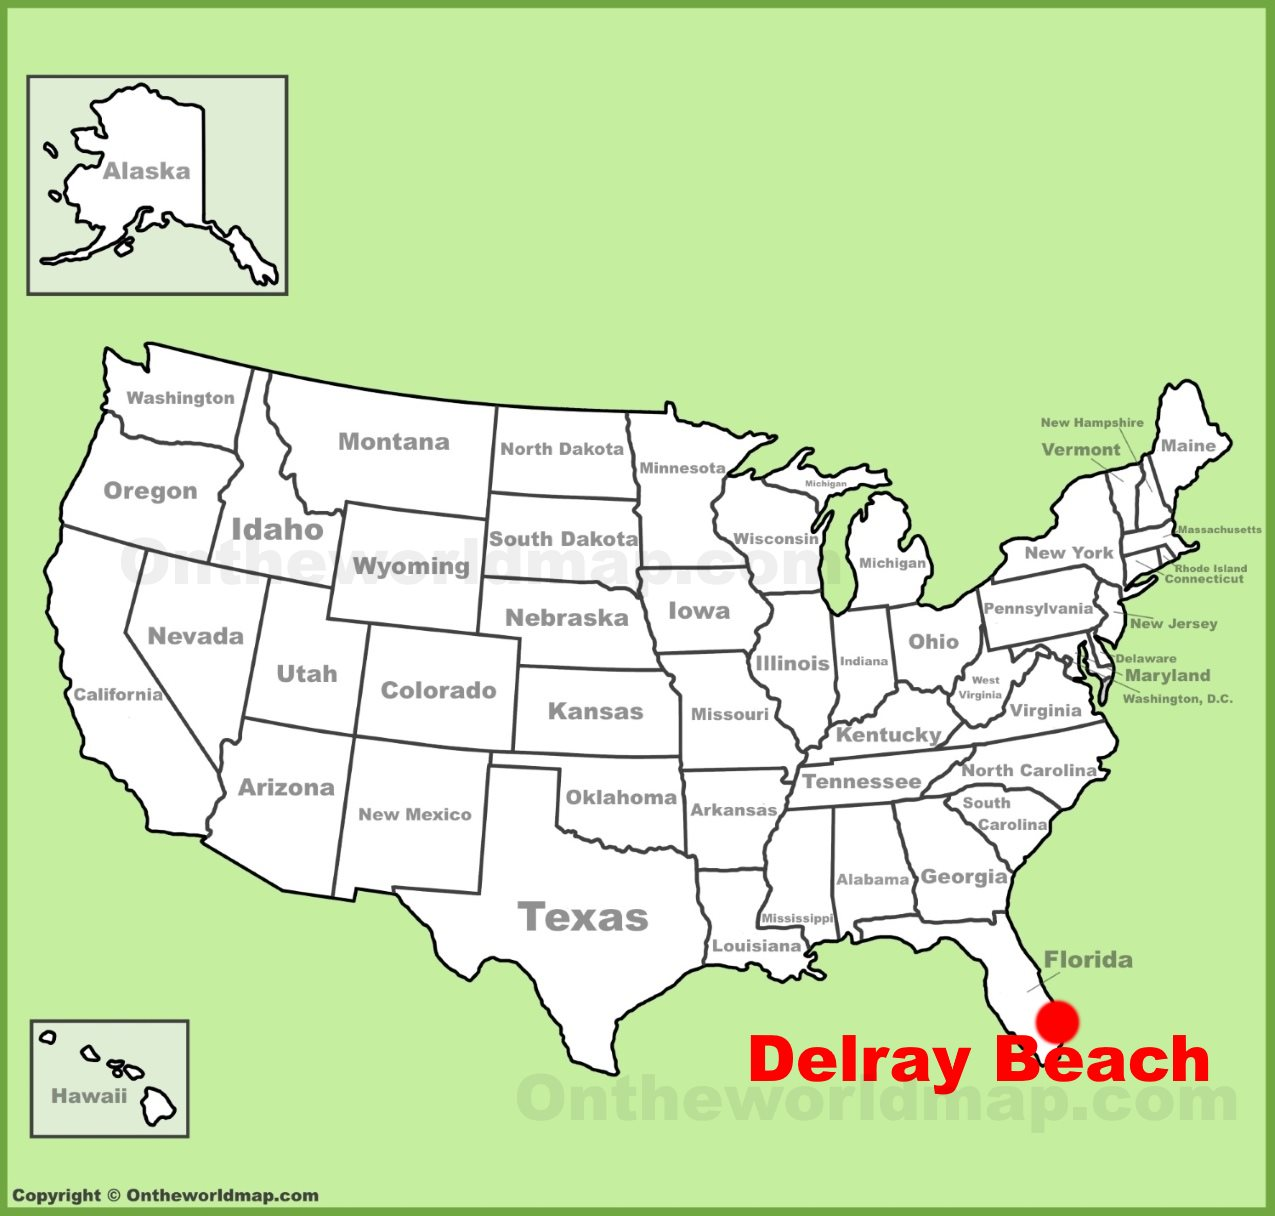 Delray Beach location on the U.S. Map on